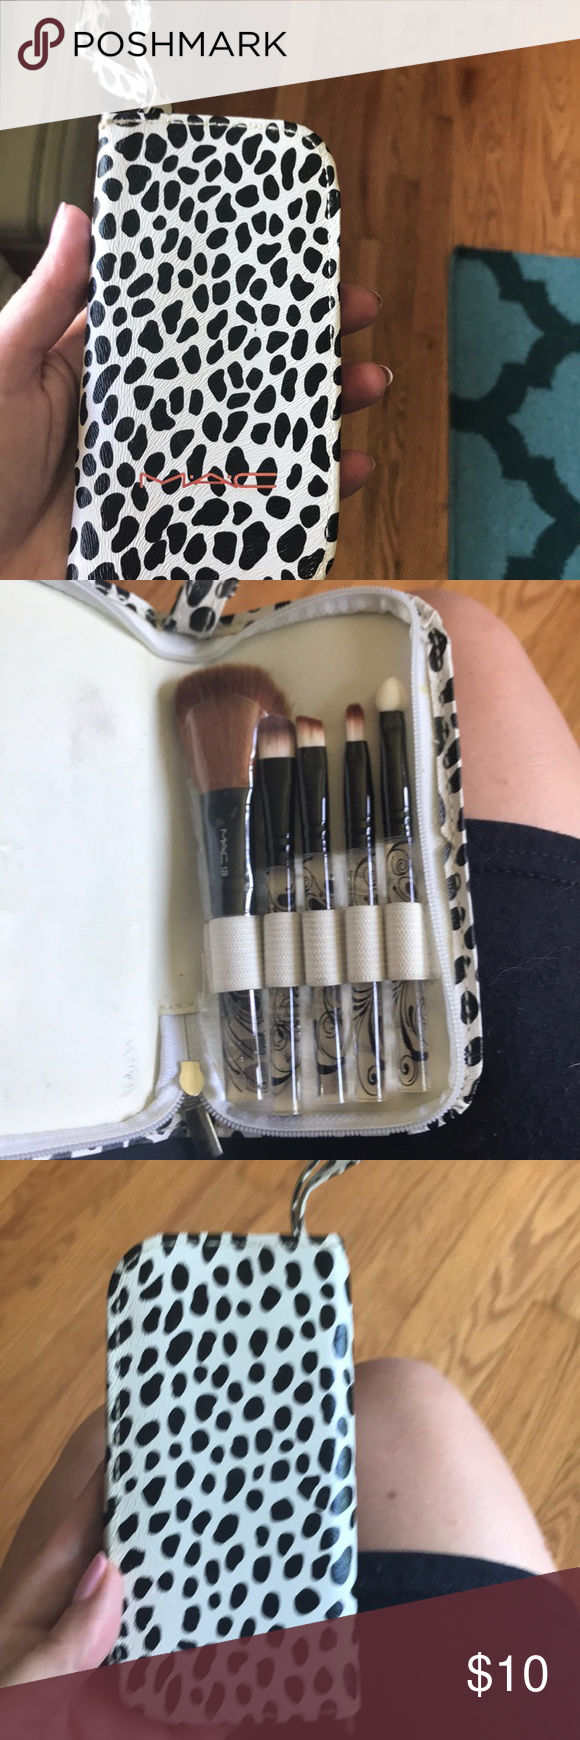 MAC travel make up brush set Makeup brush set, Makeup